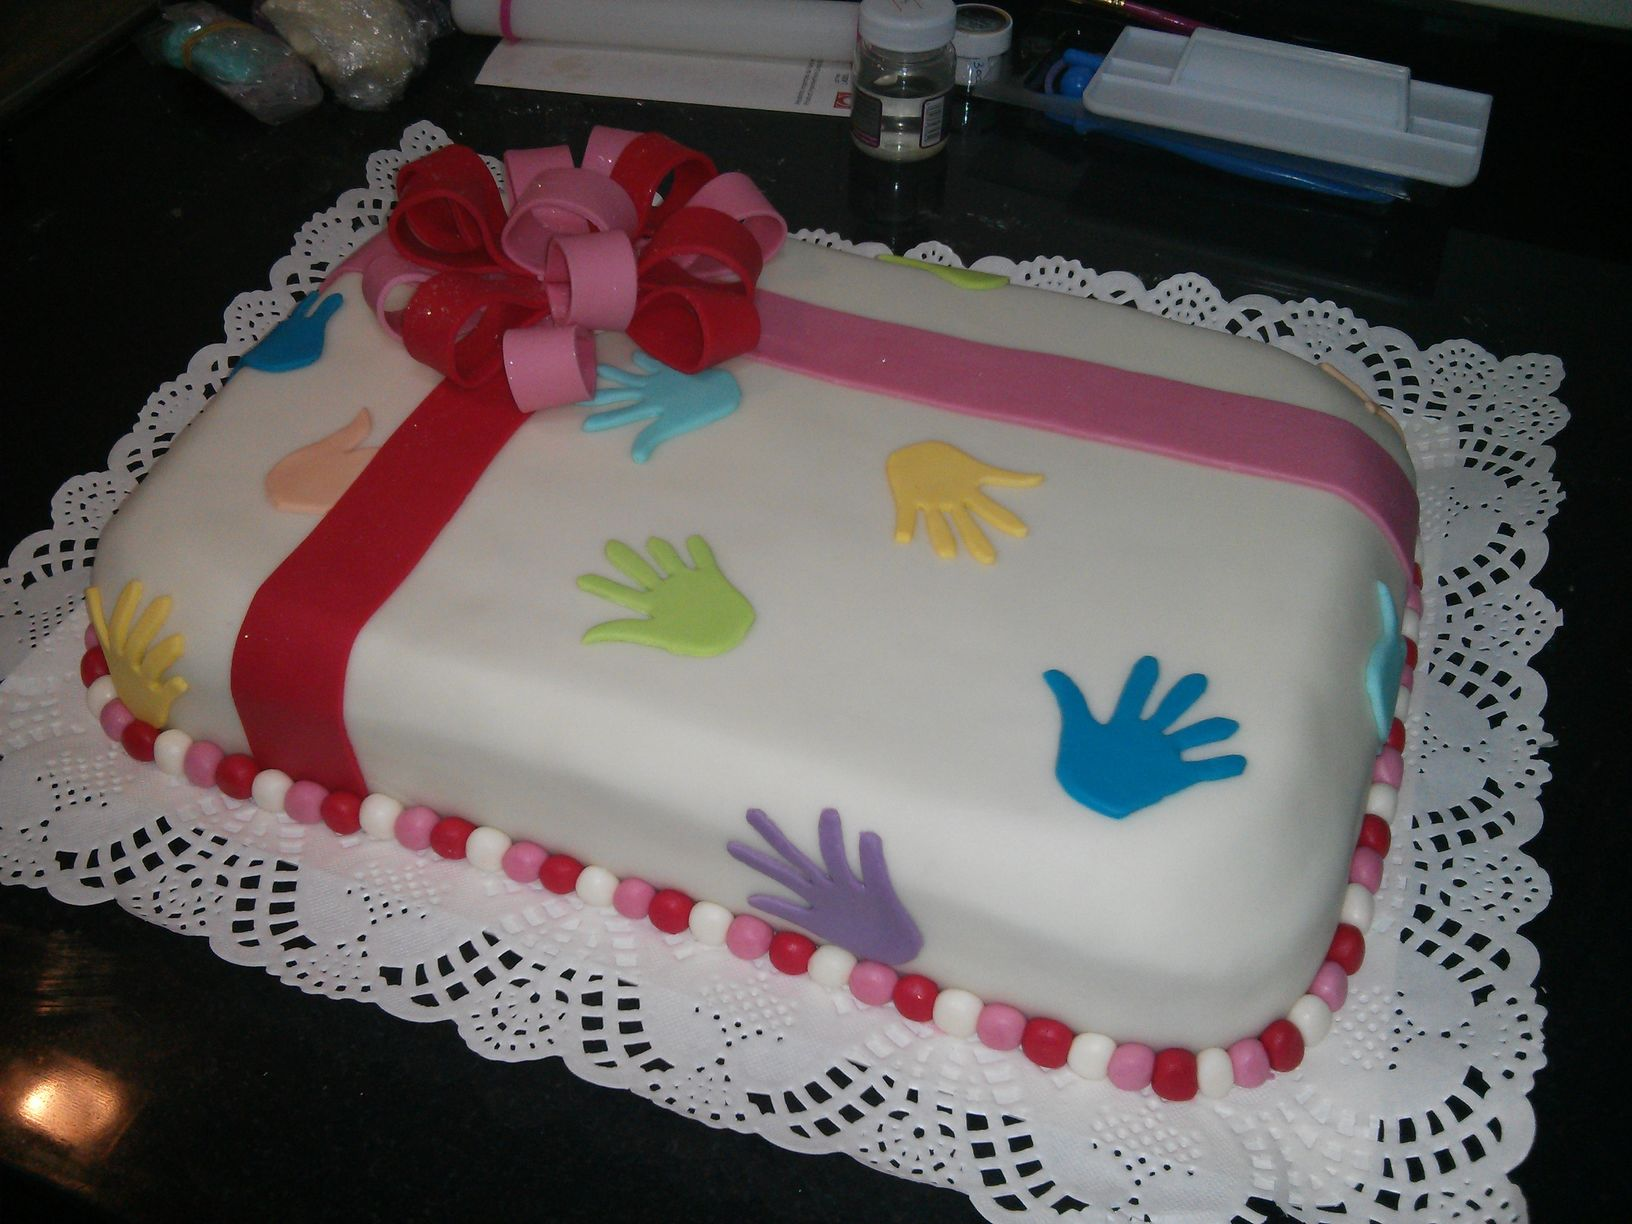 Como Decorar Un Pastel Como Hacer Un Pastel Fondant 301 Moved Permanently